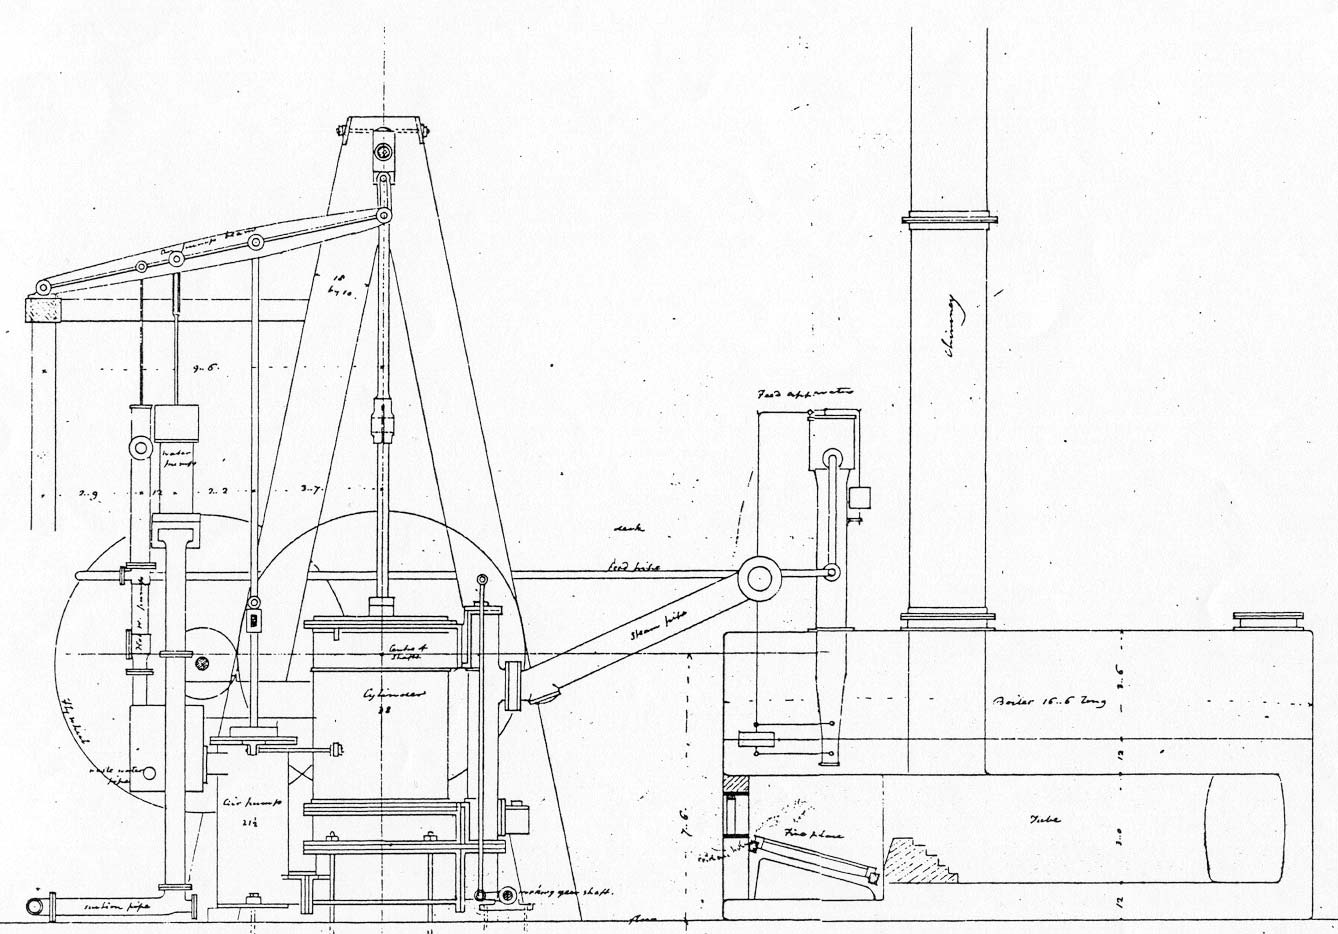 view  the steamboat frontenac u0026 39 s engine drawings  maritime history of the great lakes